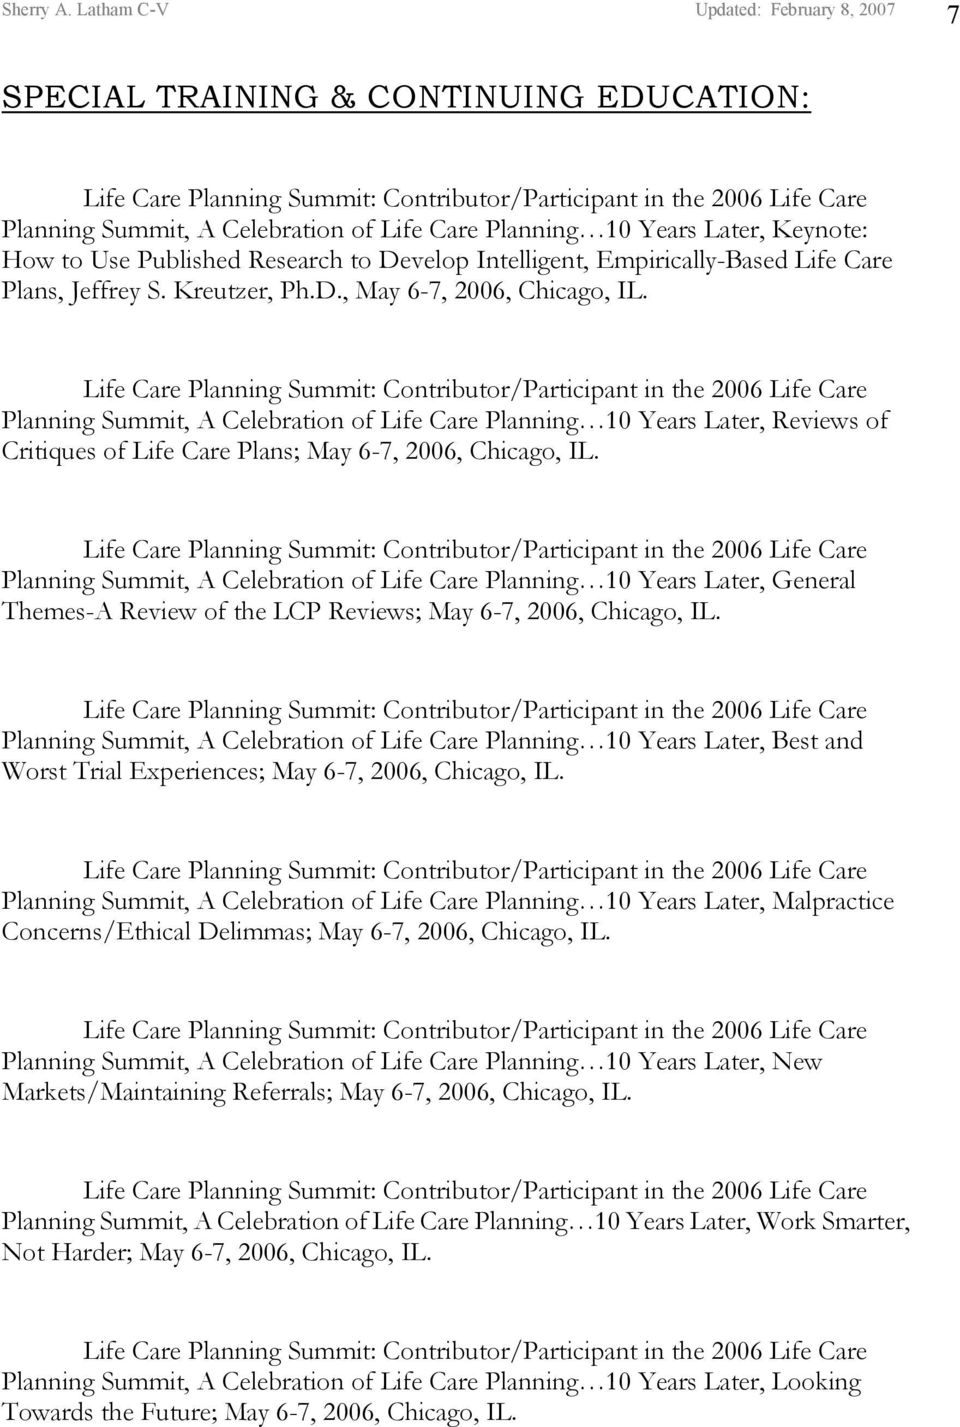 Planning Summit, A Celebration of Life Care Planning 10 Years Later, General Themes-A Review of the LCP Reviews; May 6-7, 2006, Chicago, IL.